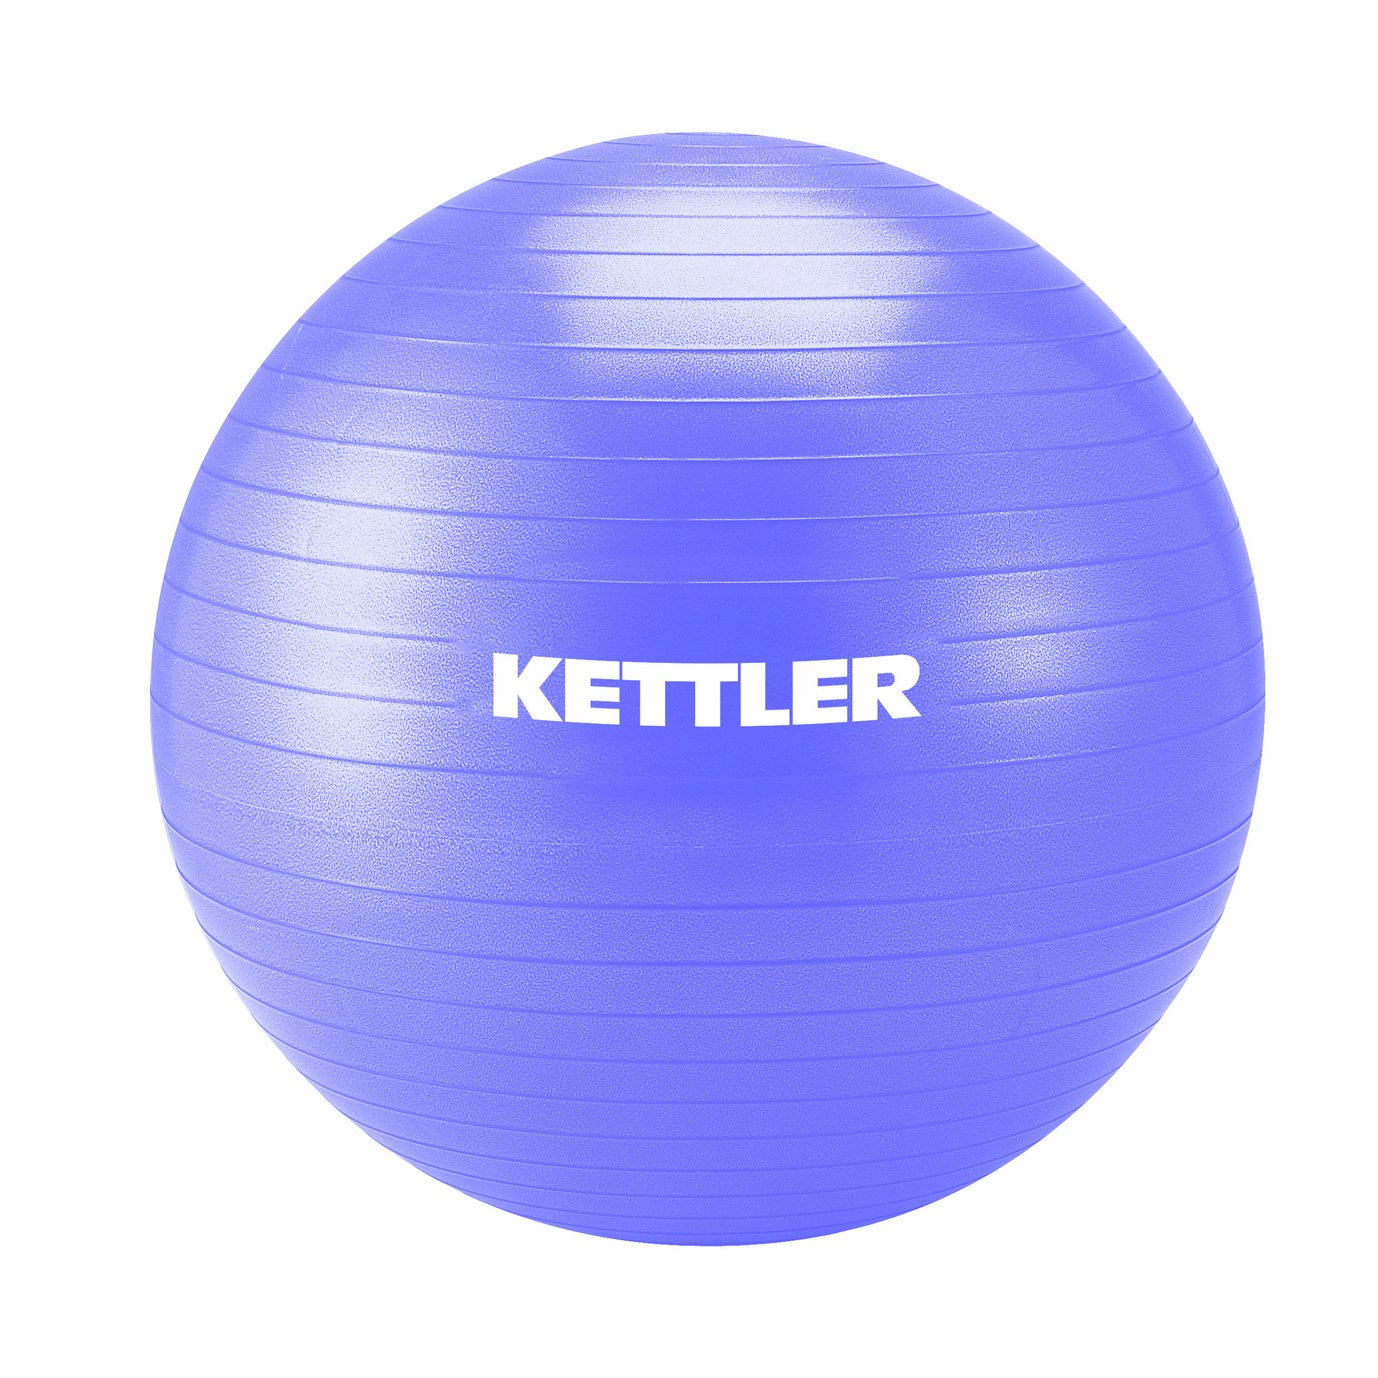 Kettler Gym Ball cm violet